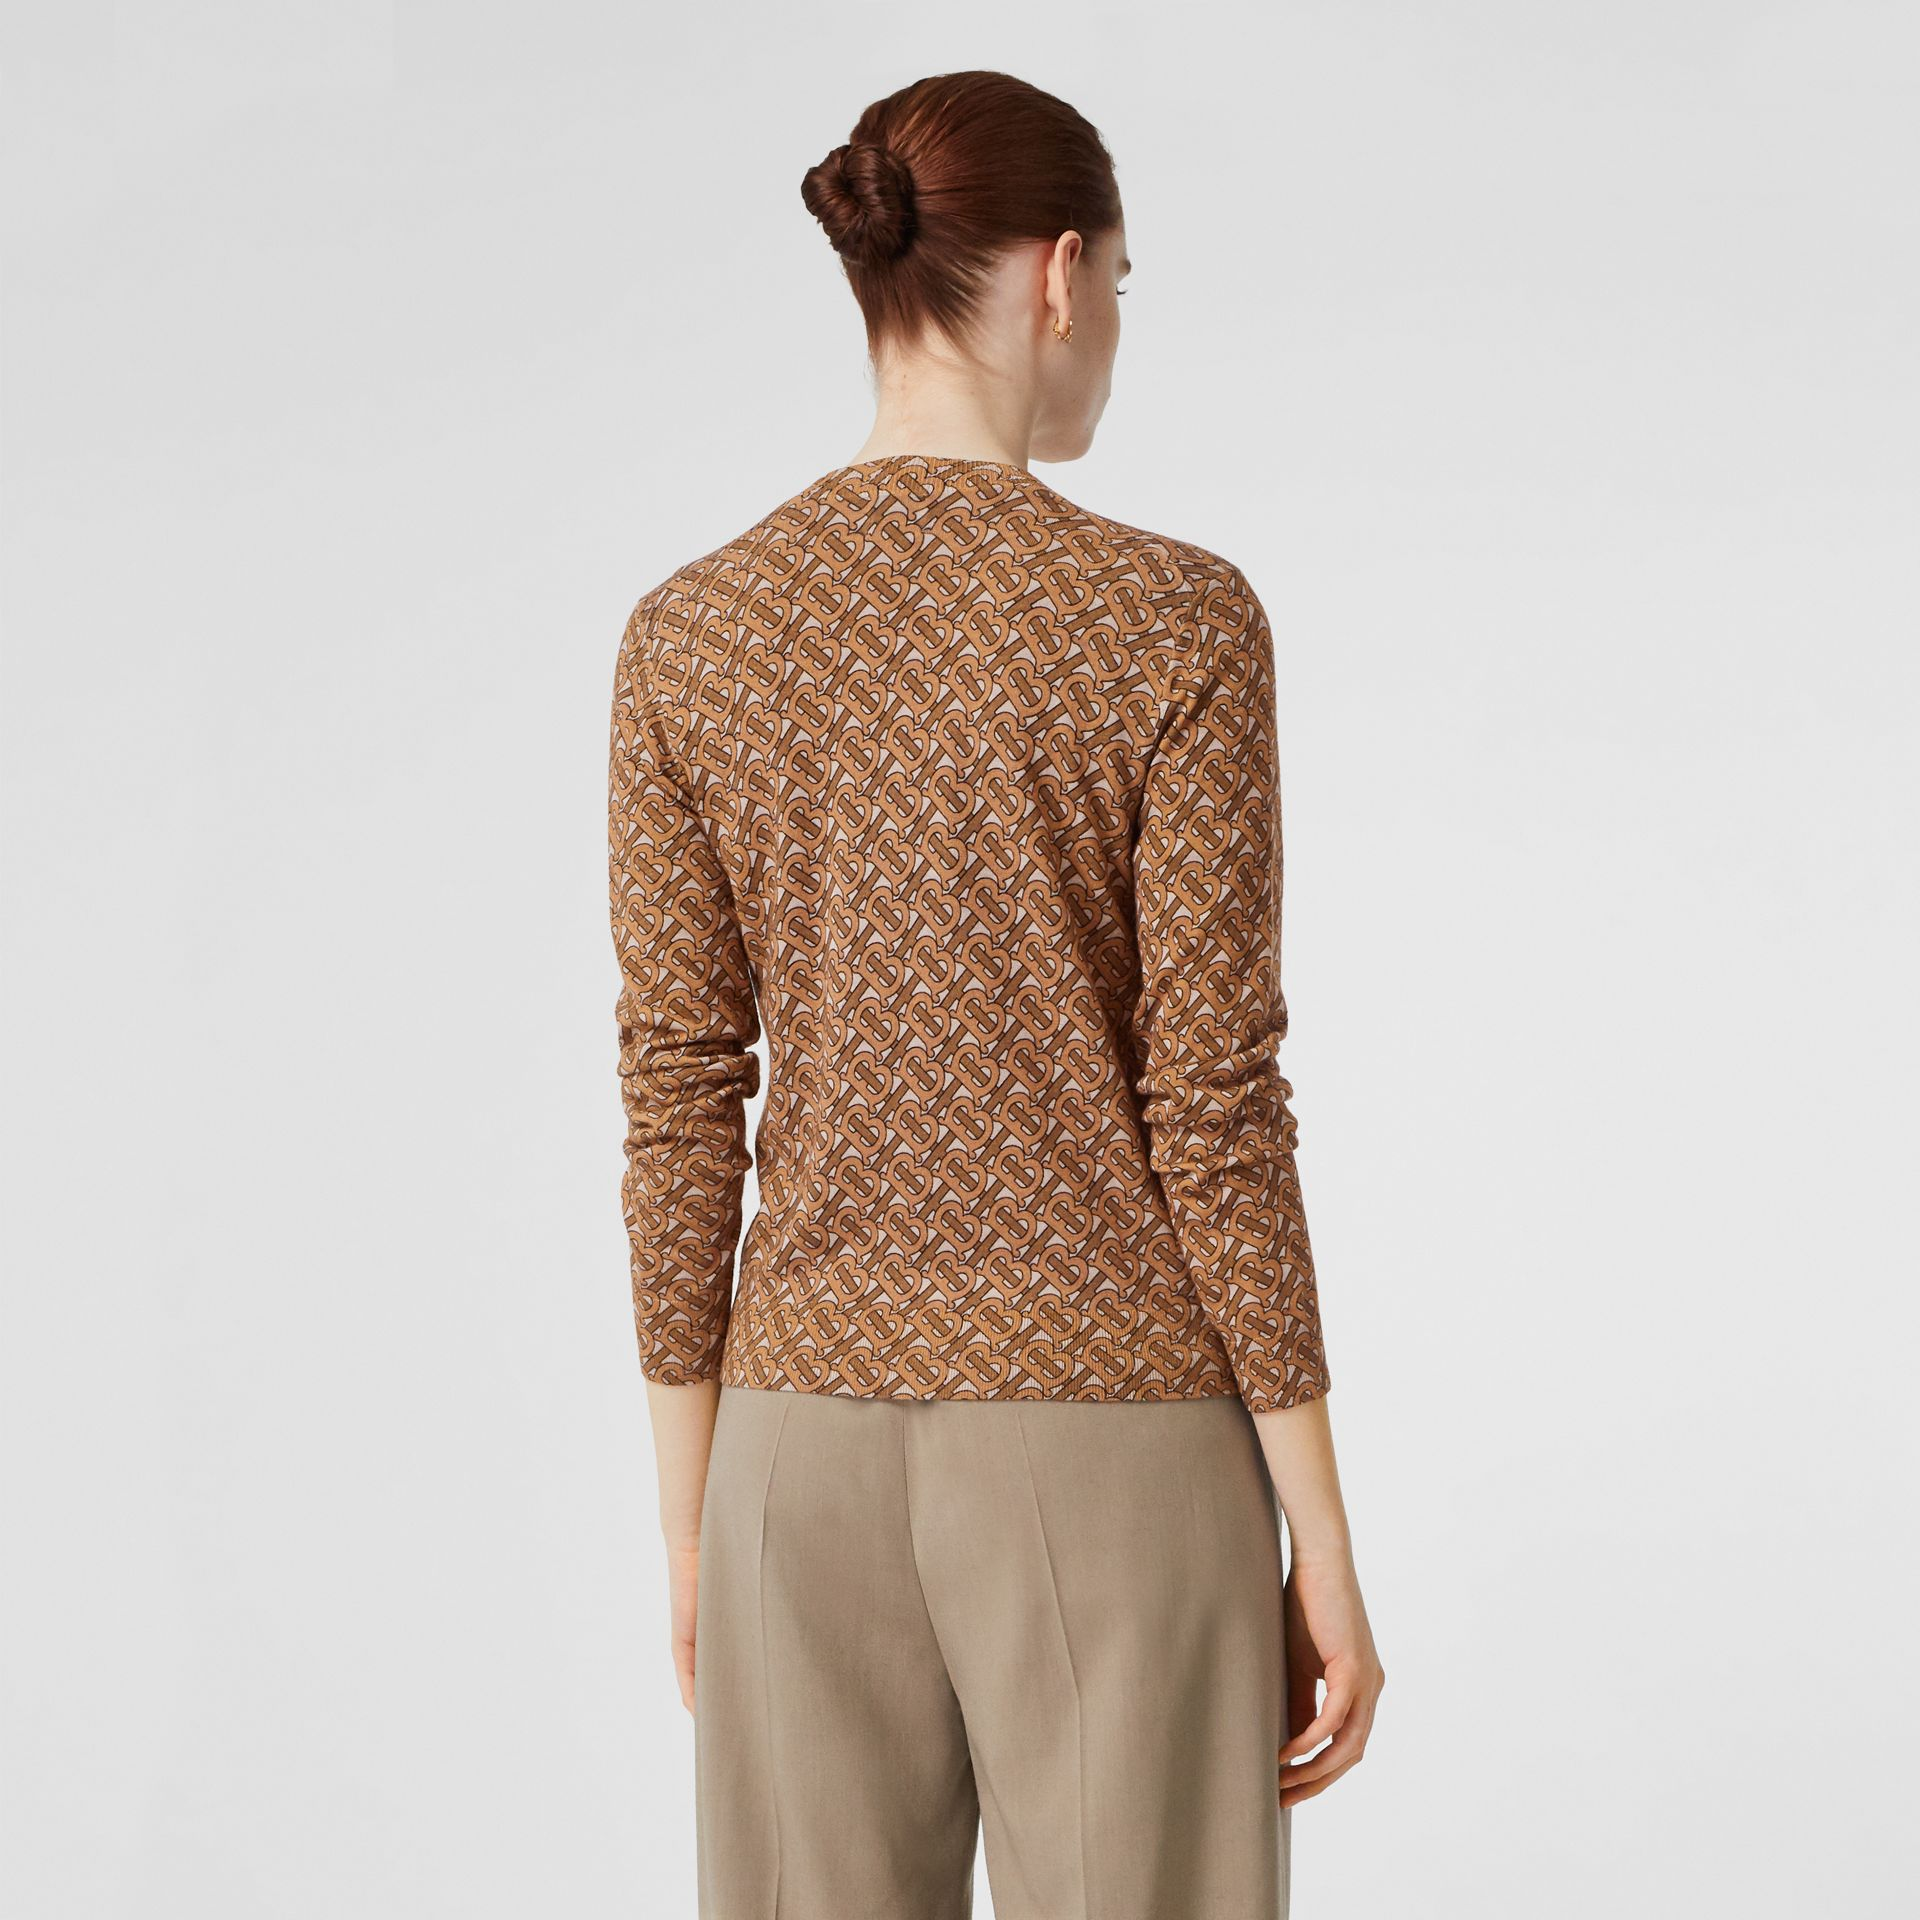 Monogram Print Merino Wool Cardigan in Beige - Women | Burberry - gallery image 2